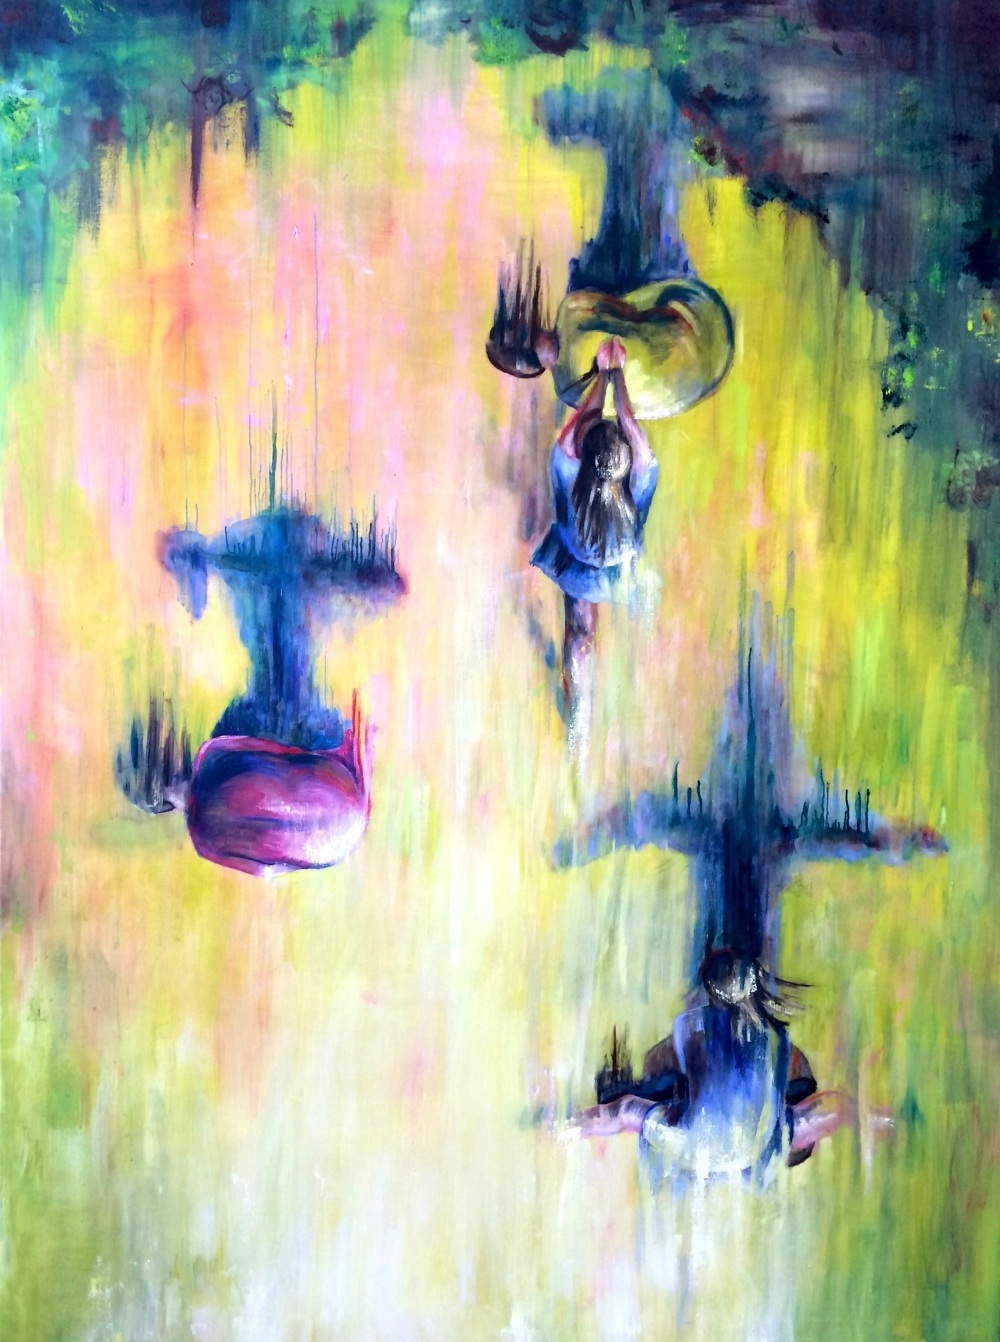 Kamikaze,   200 X 150 cm, oil on canvas, 2015